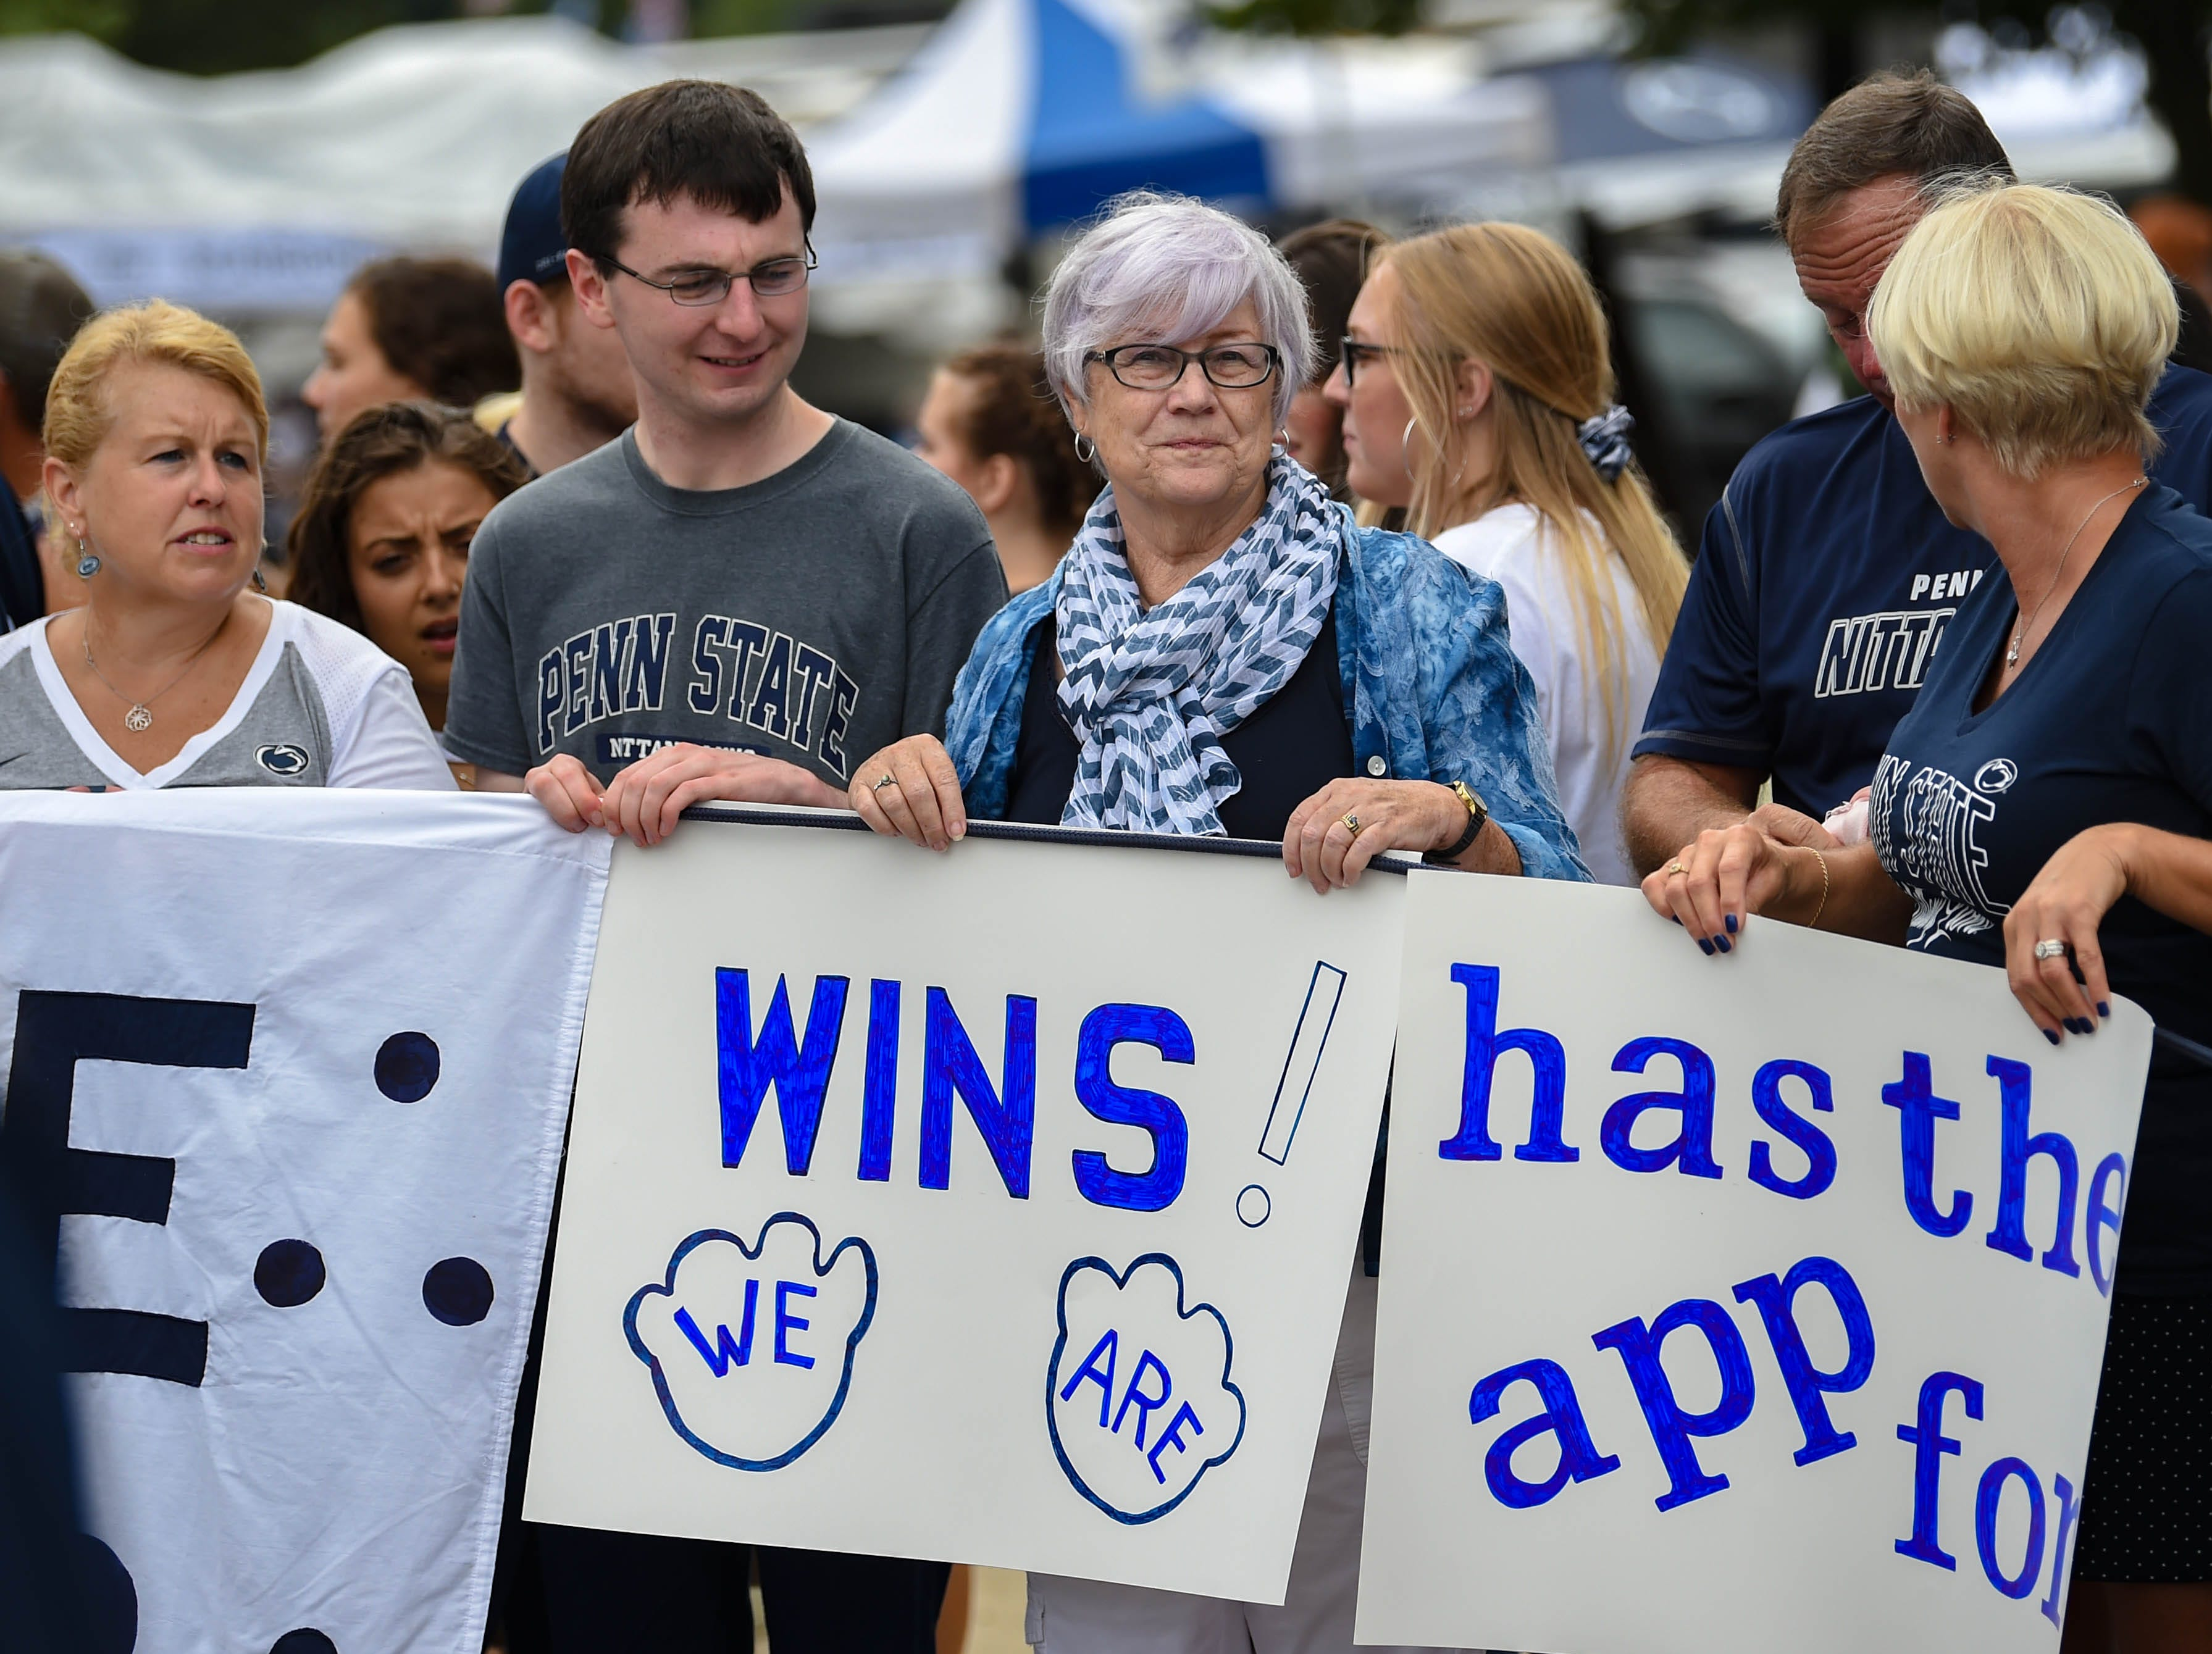 Fans proudly display their homemade signs as the Penn State players enter Beaver Stadium on September 1, 2018.